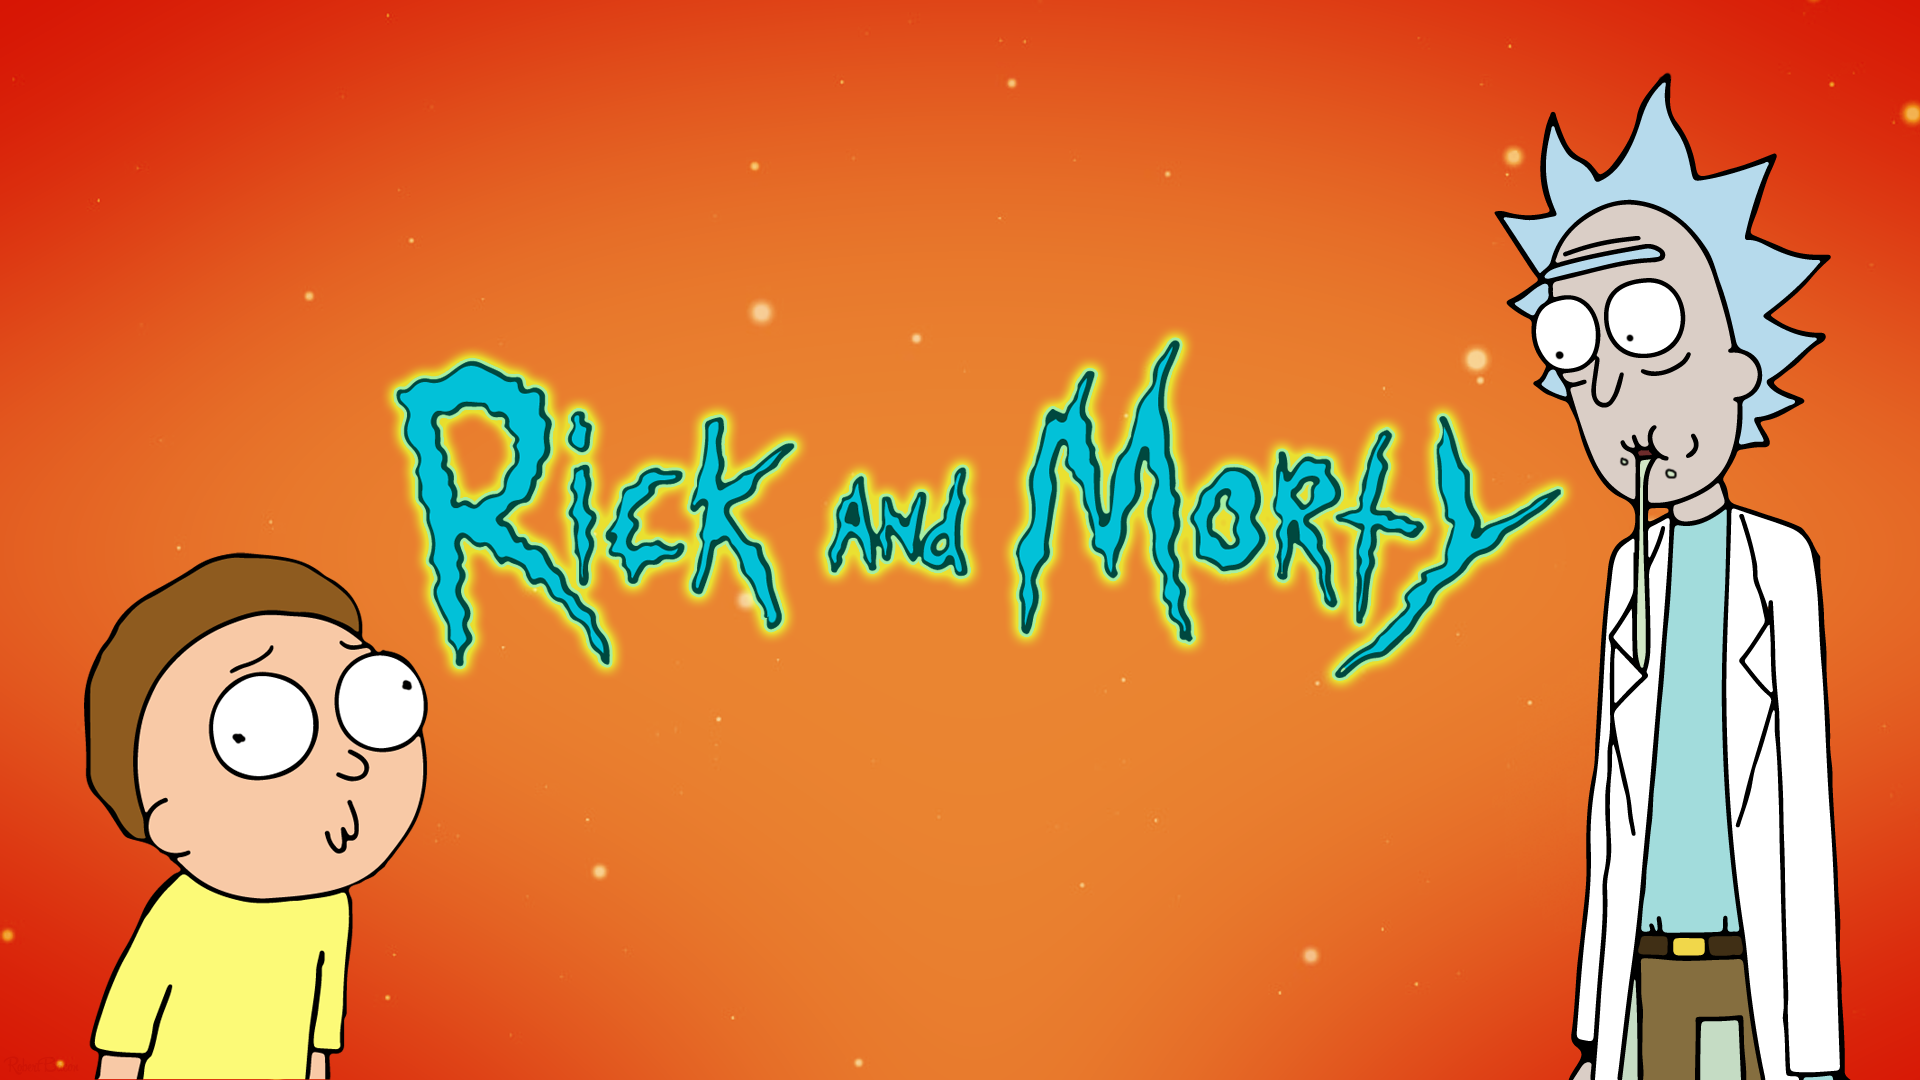 Rick And Morty Hd Wallpapers New Tab Theme Playtime